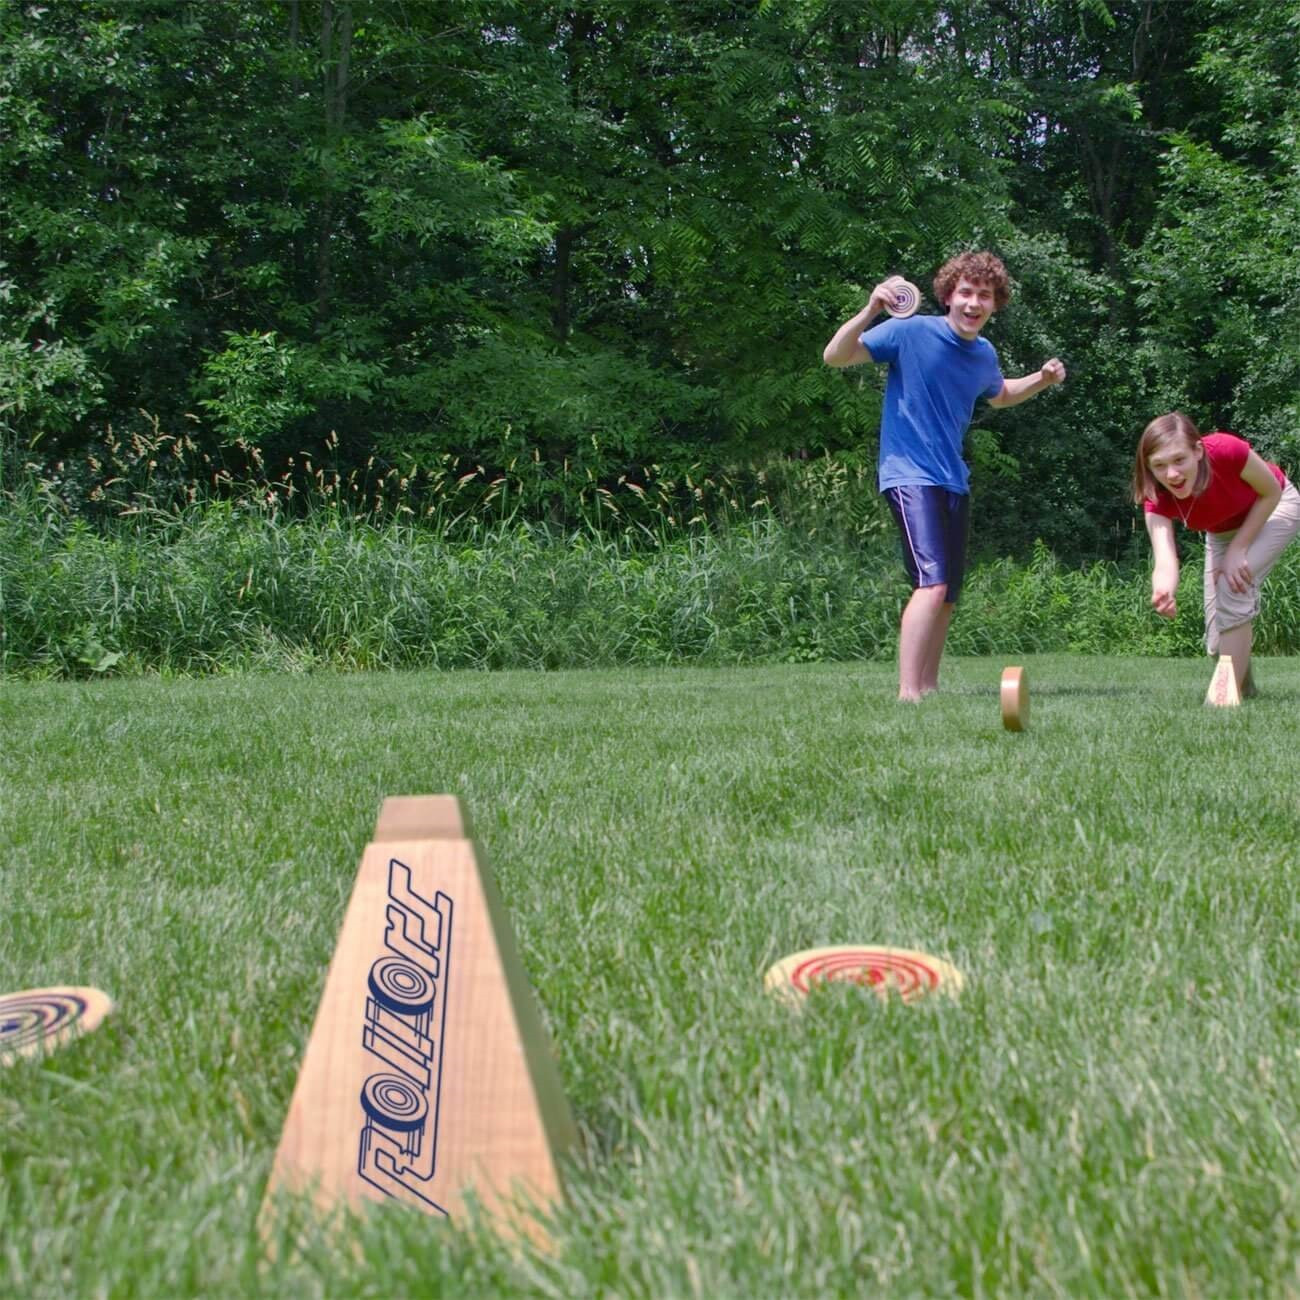 Backyard Video Games  Top 10 Backyard Party Games for All Ages